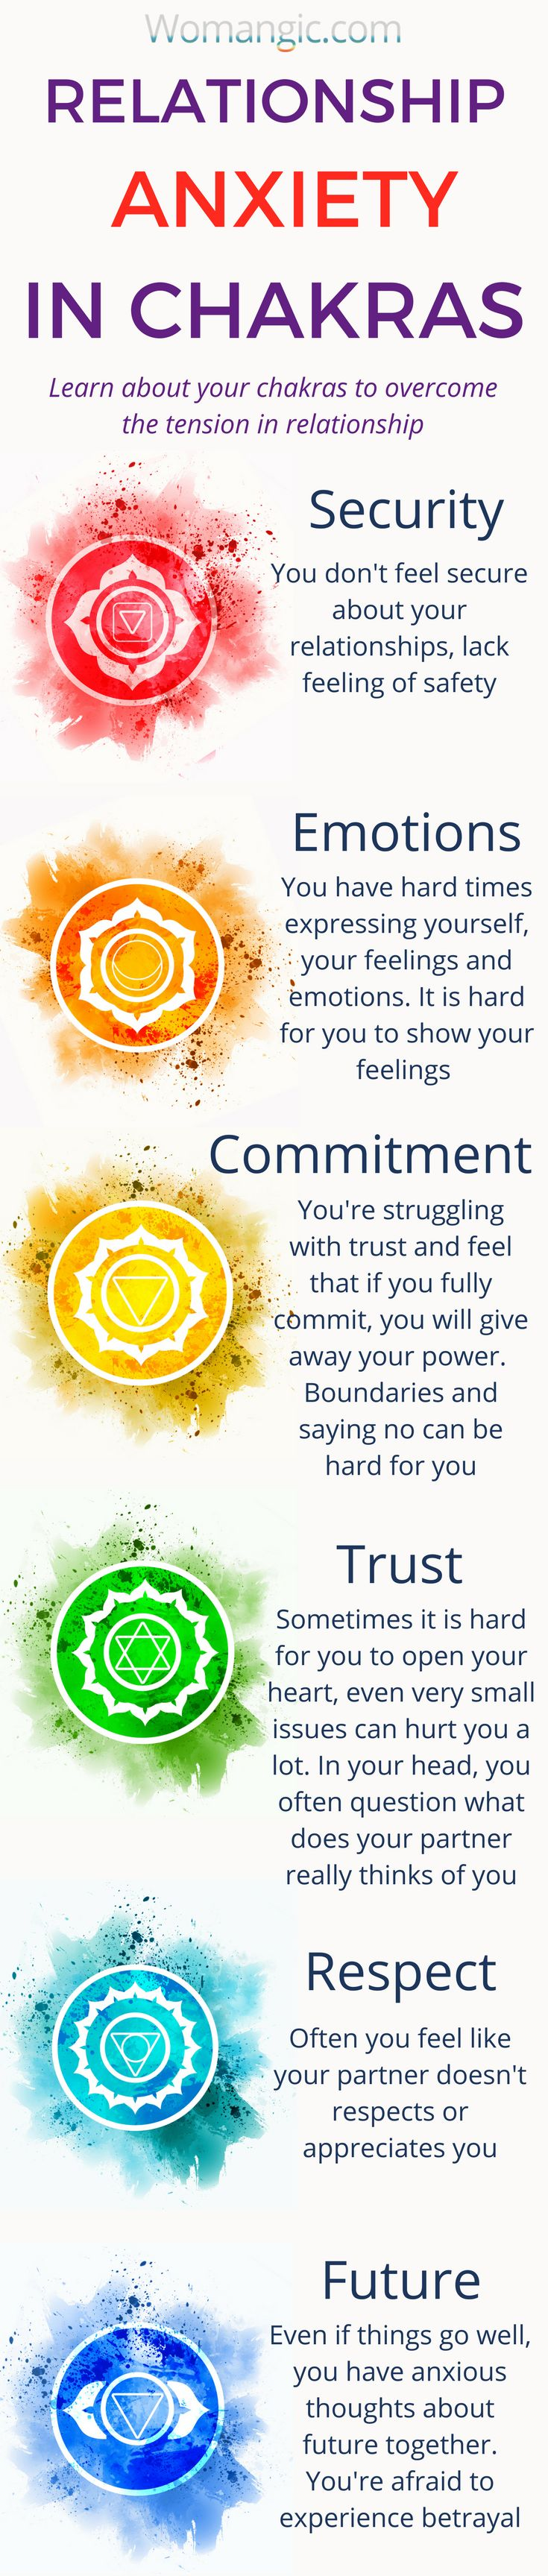 How to improve your Relationship, Chakra, Chakra Balancing, Root, Sacral, Solar Plexus, Heart, Throat, Third Eye, Crown, Chakra meaning, Chakra affirmation, Chakra Mantra, Chakra Energy, Energy, Chakra articles, Chakra Healing, Chakra Cleanse, Chakra Illustration, Chakra Base, Chakra Images, Chakra Signification, Anxiety, Anxiety Relief, Anxiety Help, Anxiety Social, Anxiety Overcoming, Anxiety Attack. Relationship, Relationship Advice, Relationship Problems, Relationship Tips, Couple.